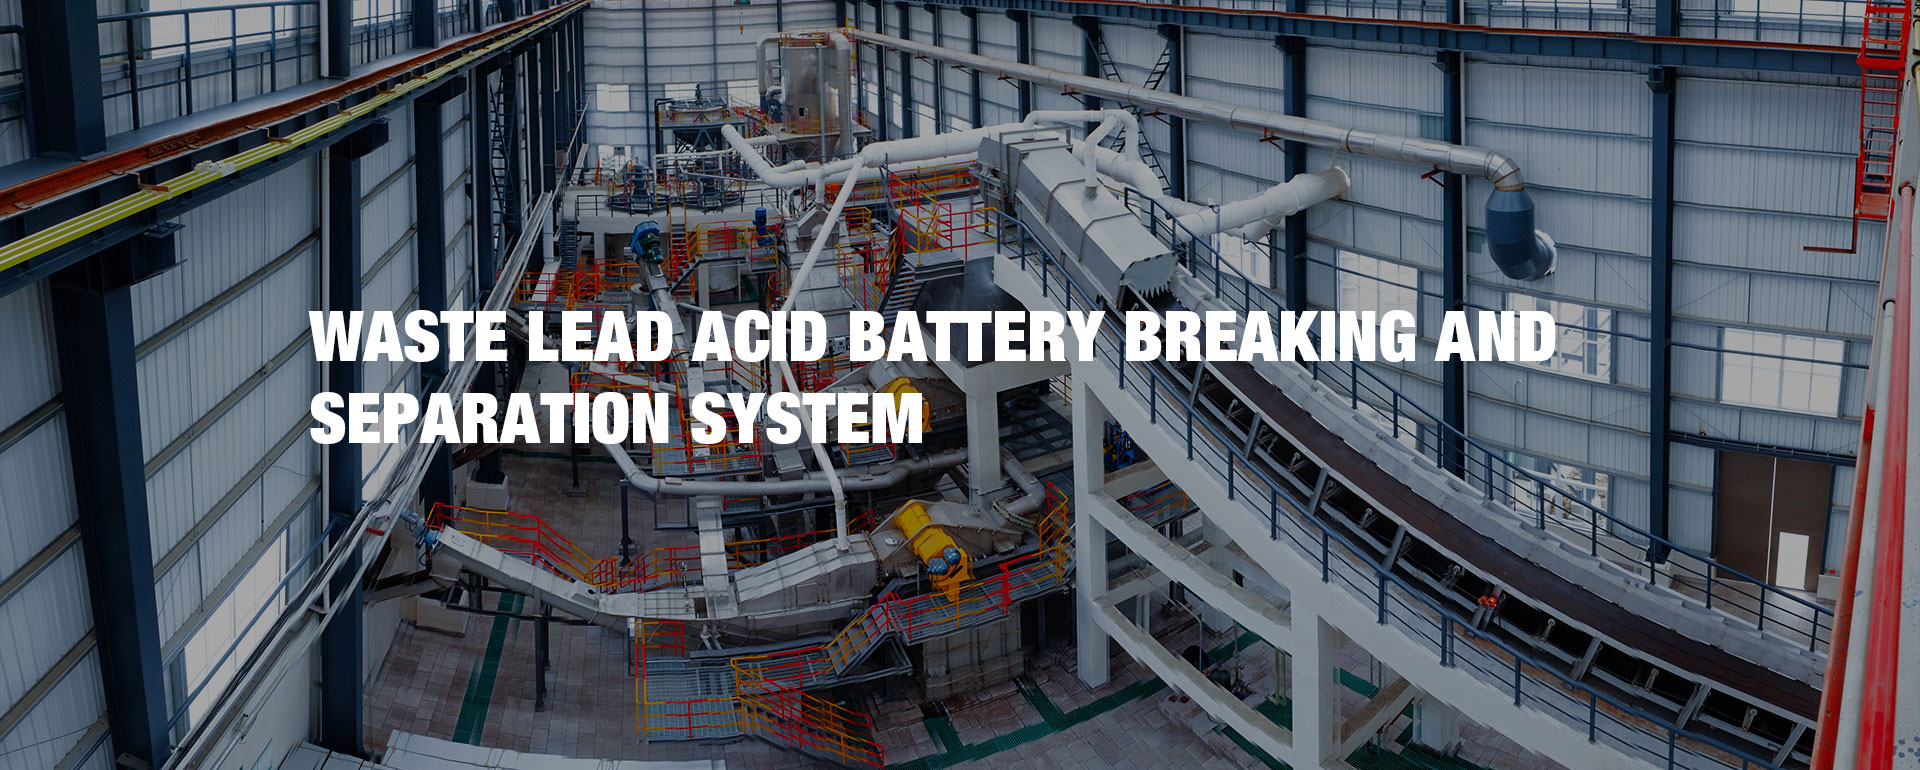 Waste lead acid battery breaking and separation system